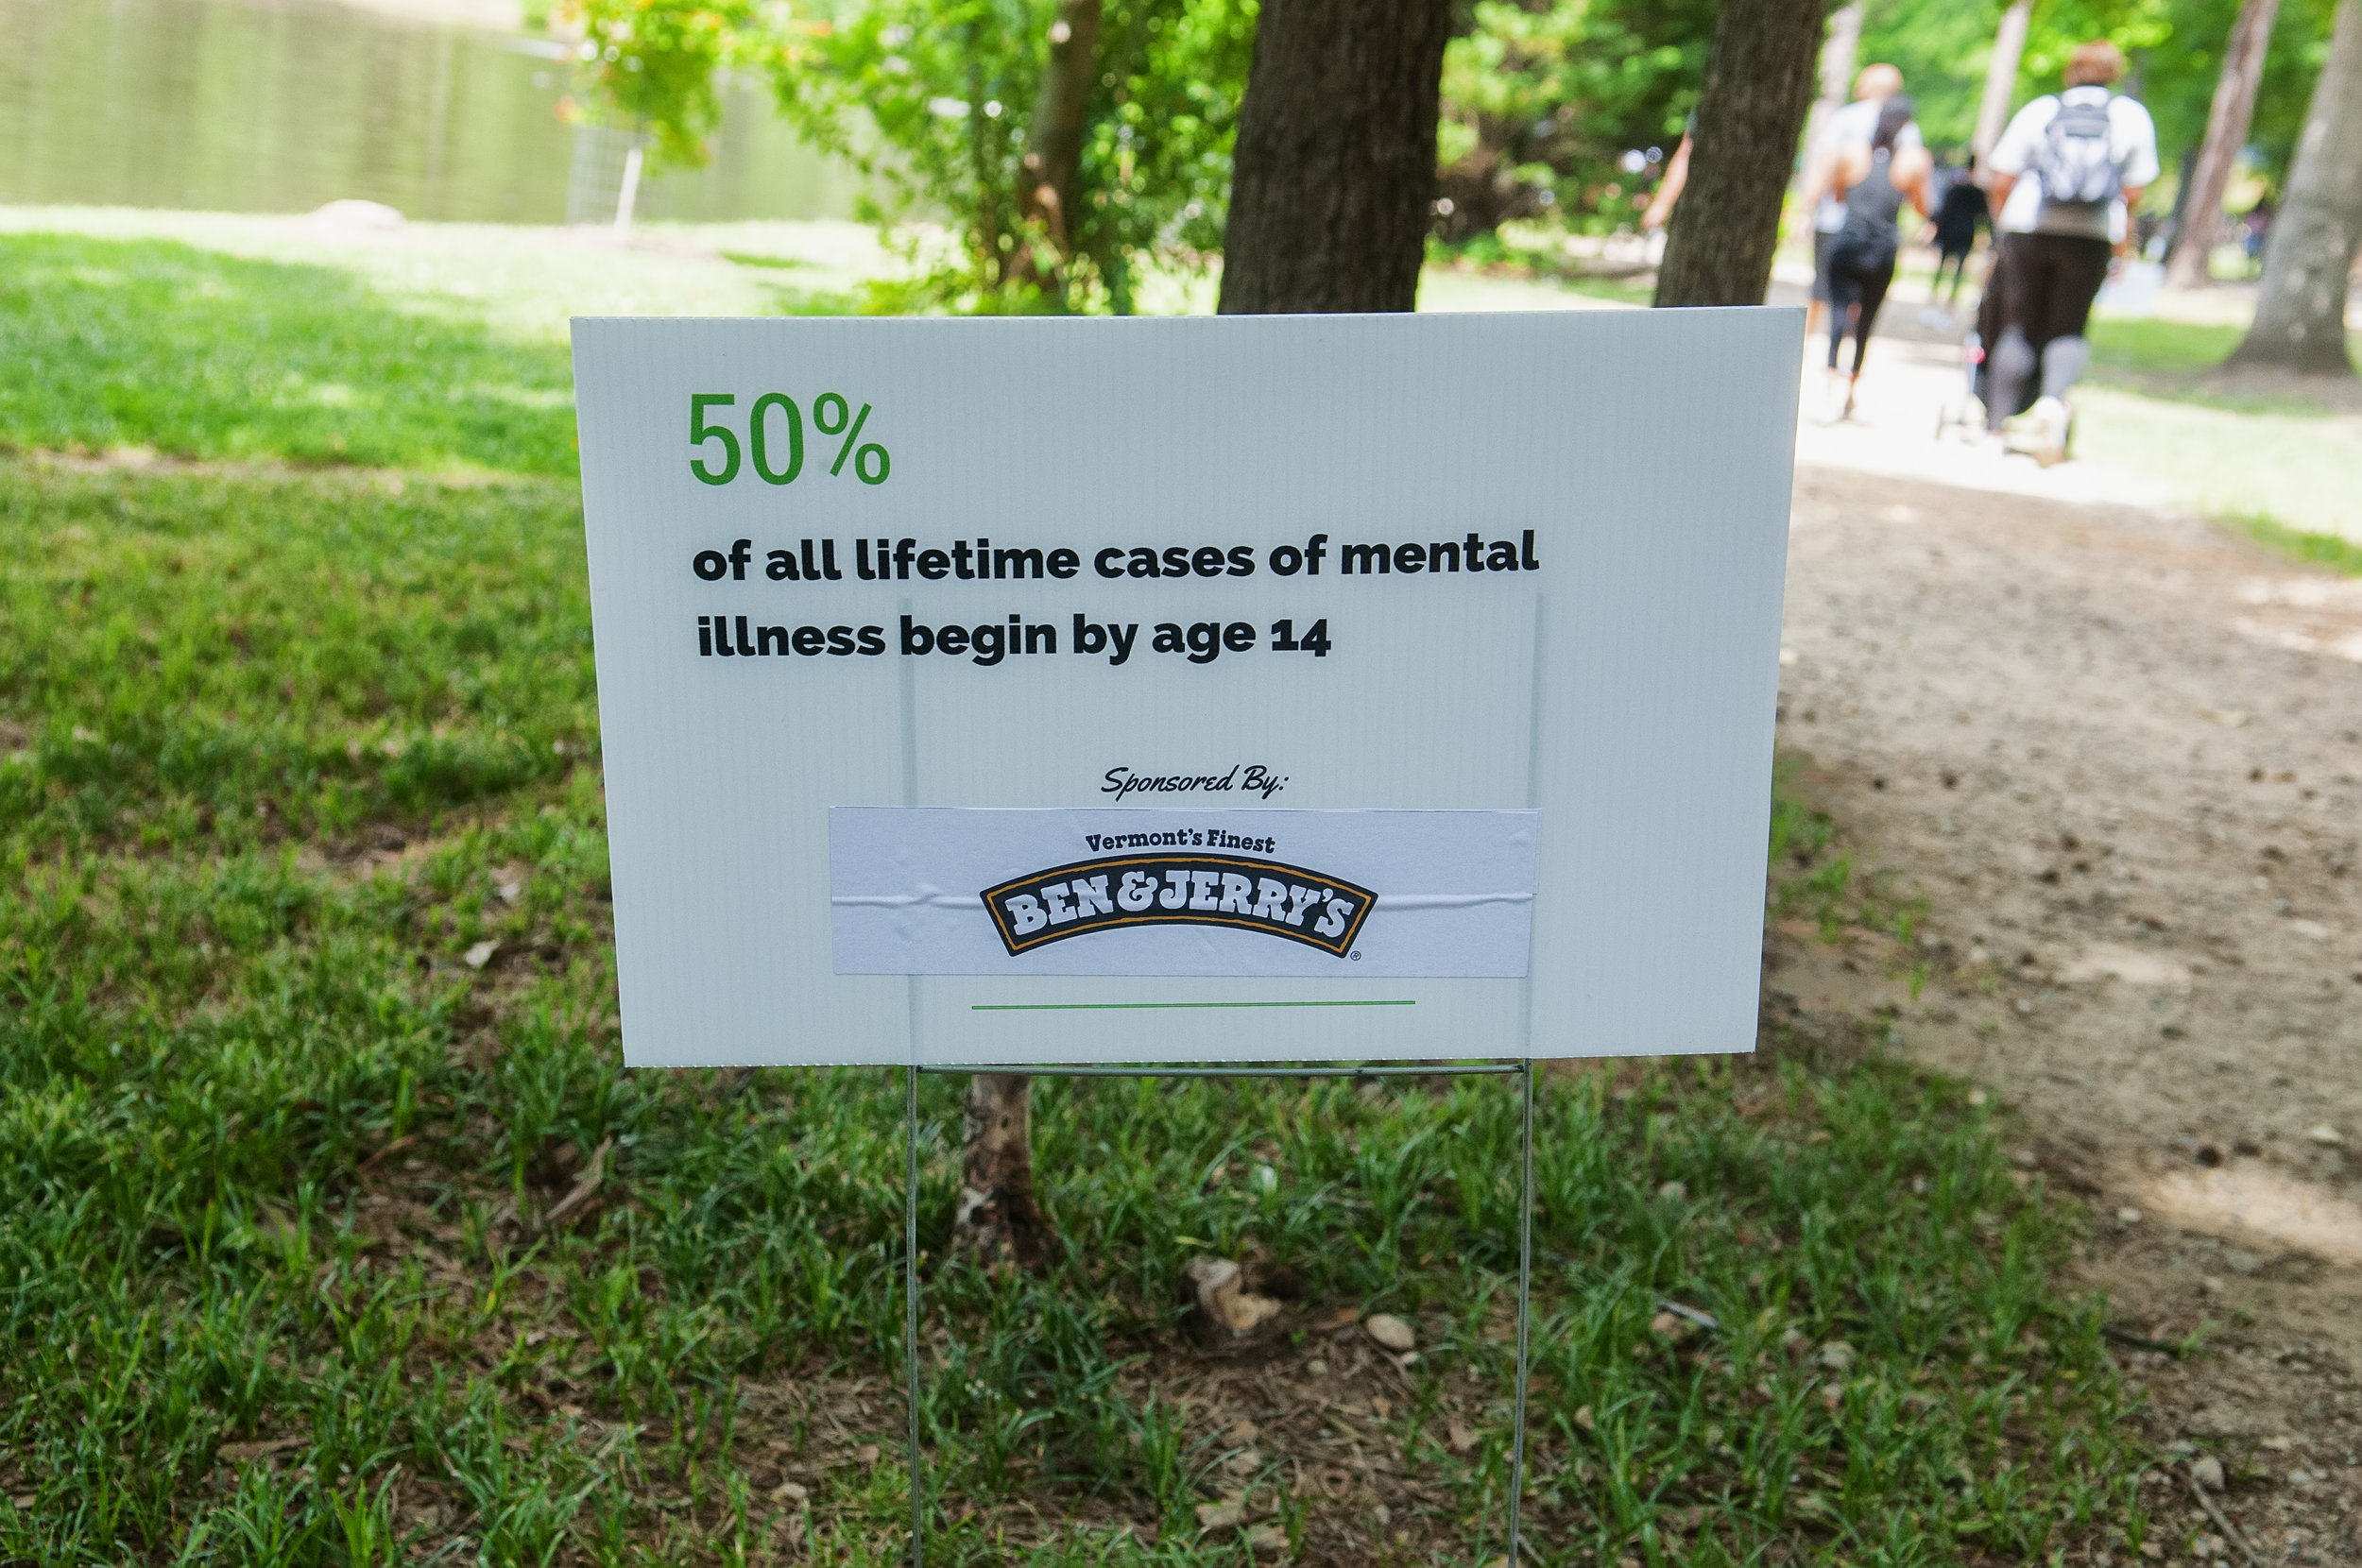 2nd Annual Let's Talk About It Mental Health Awareness Walk @ Park Rd Park 5-20-17 by Jon Strayhorn 170.jpg